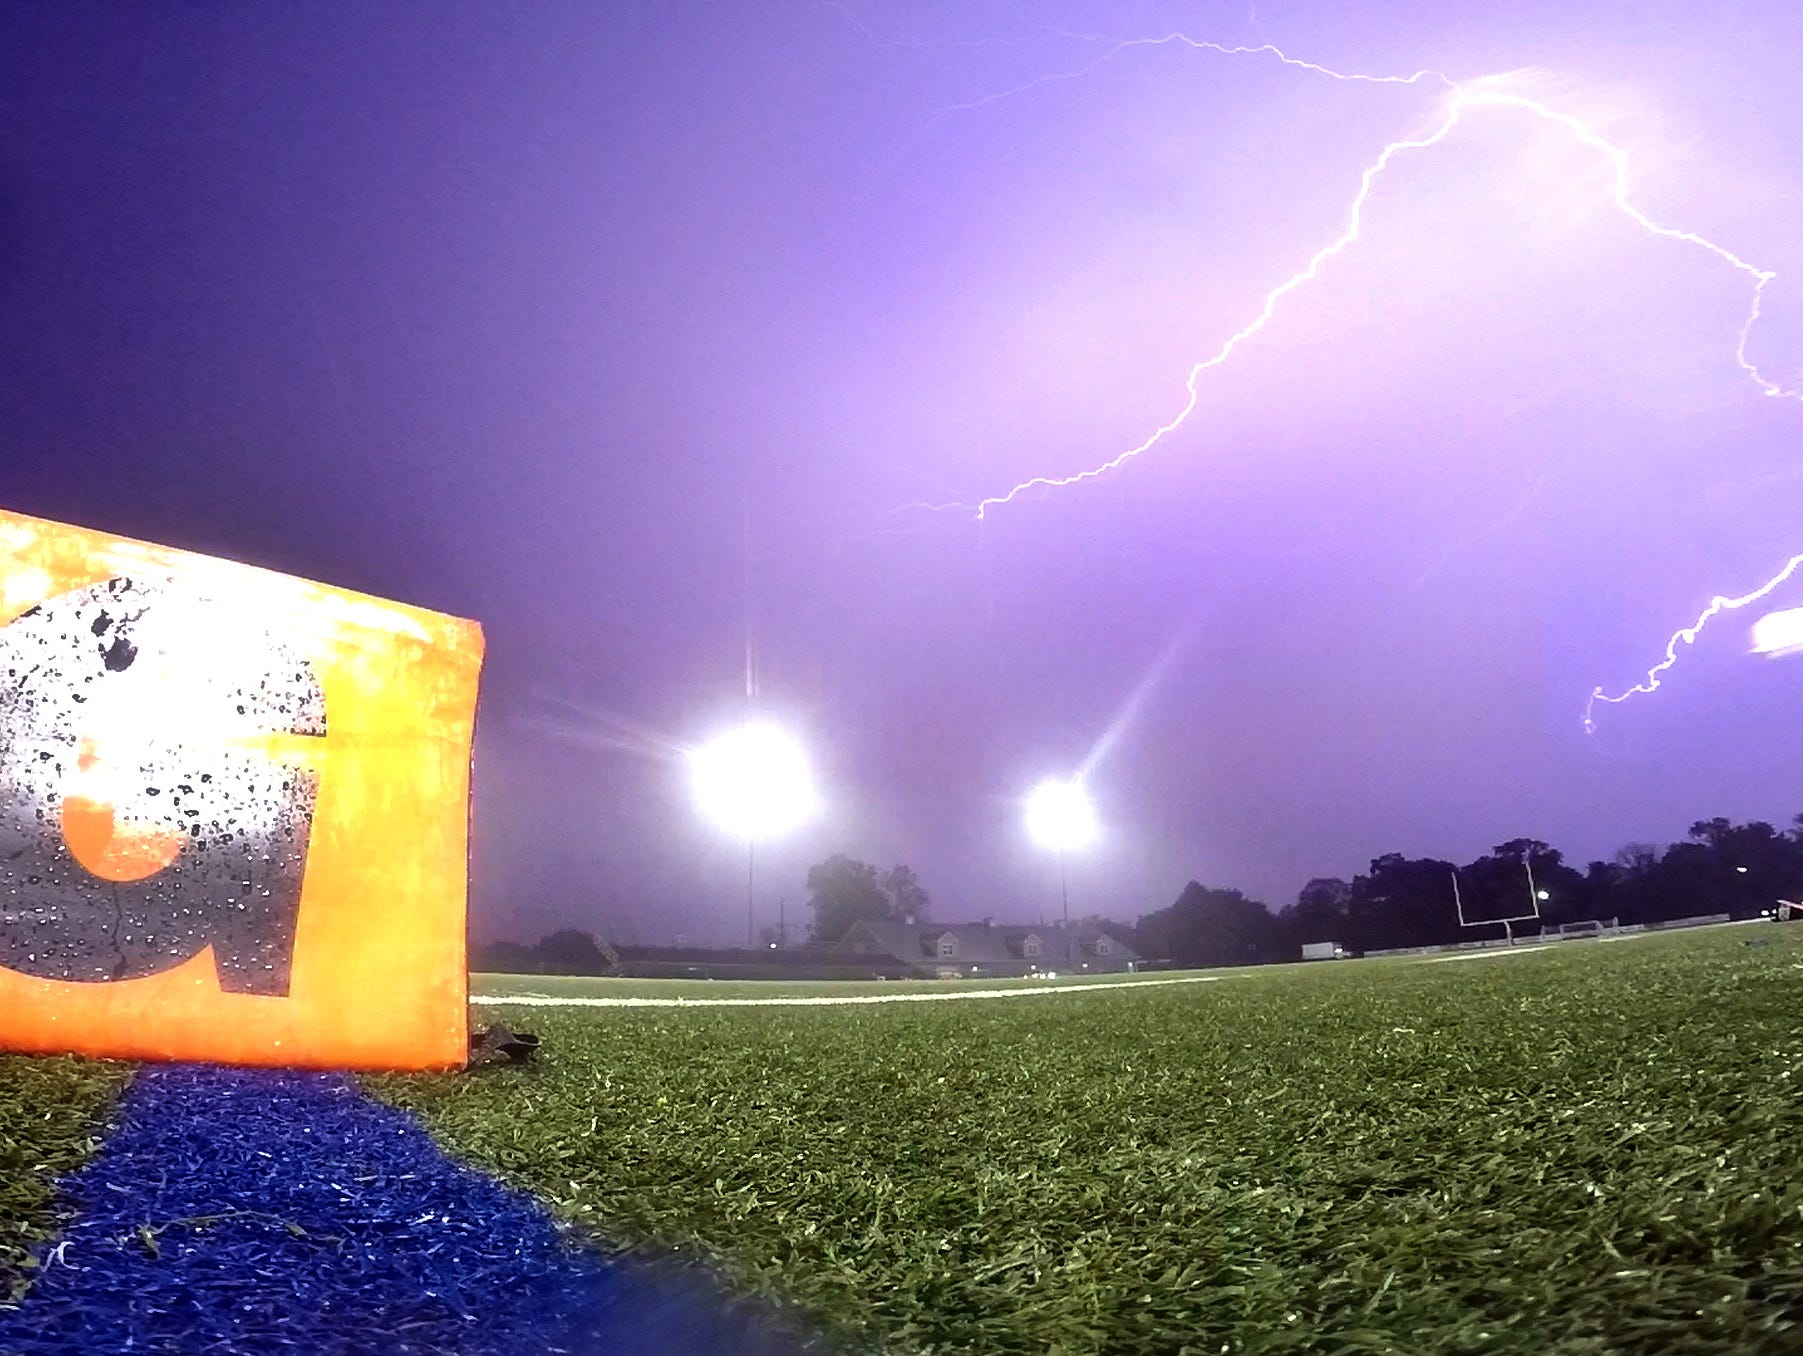 Lightning fills the sky over Borden Stadium in Rumson Friday evening, October 9, 2015, delaying the start of the Long Branch at Rumson-Fair Haven football game.